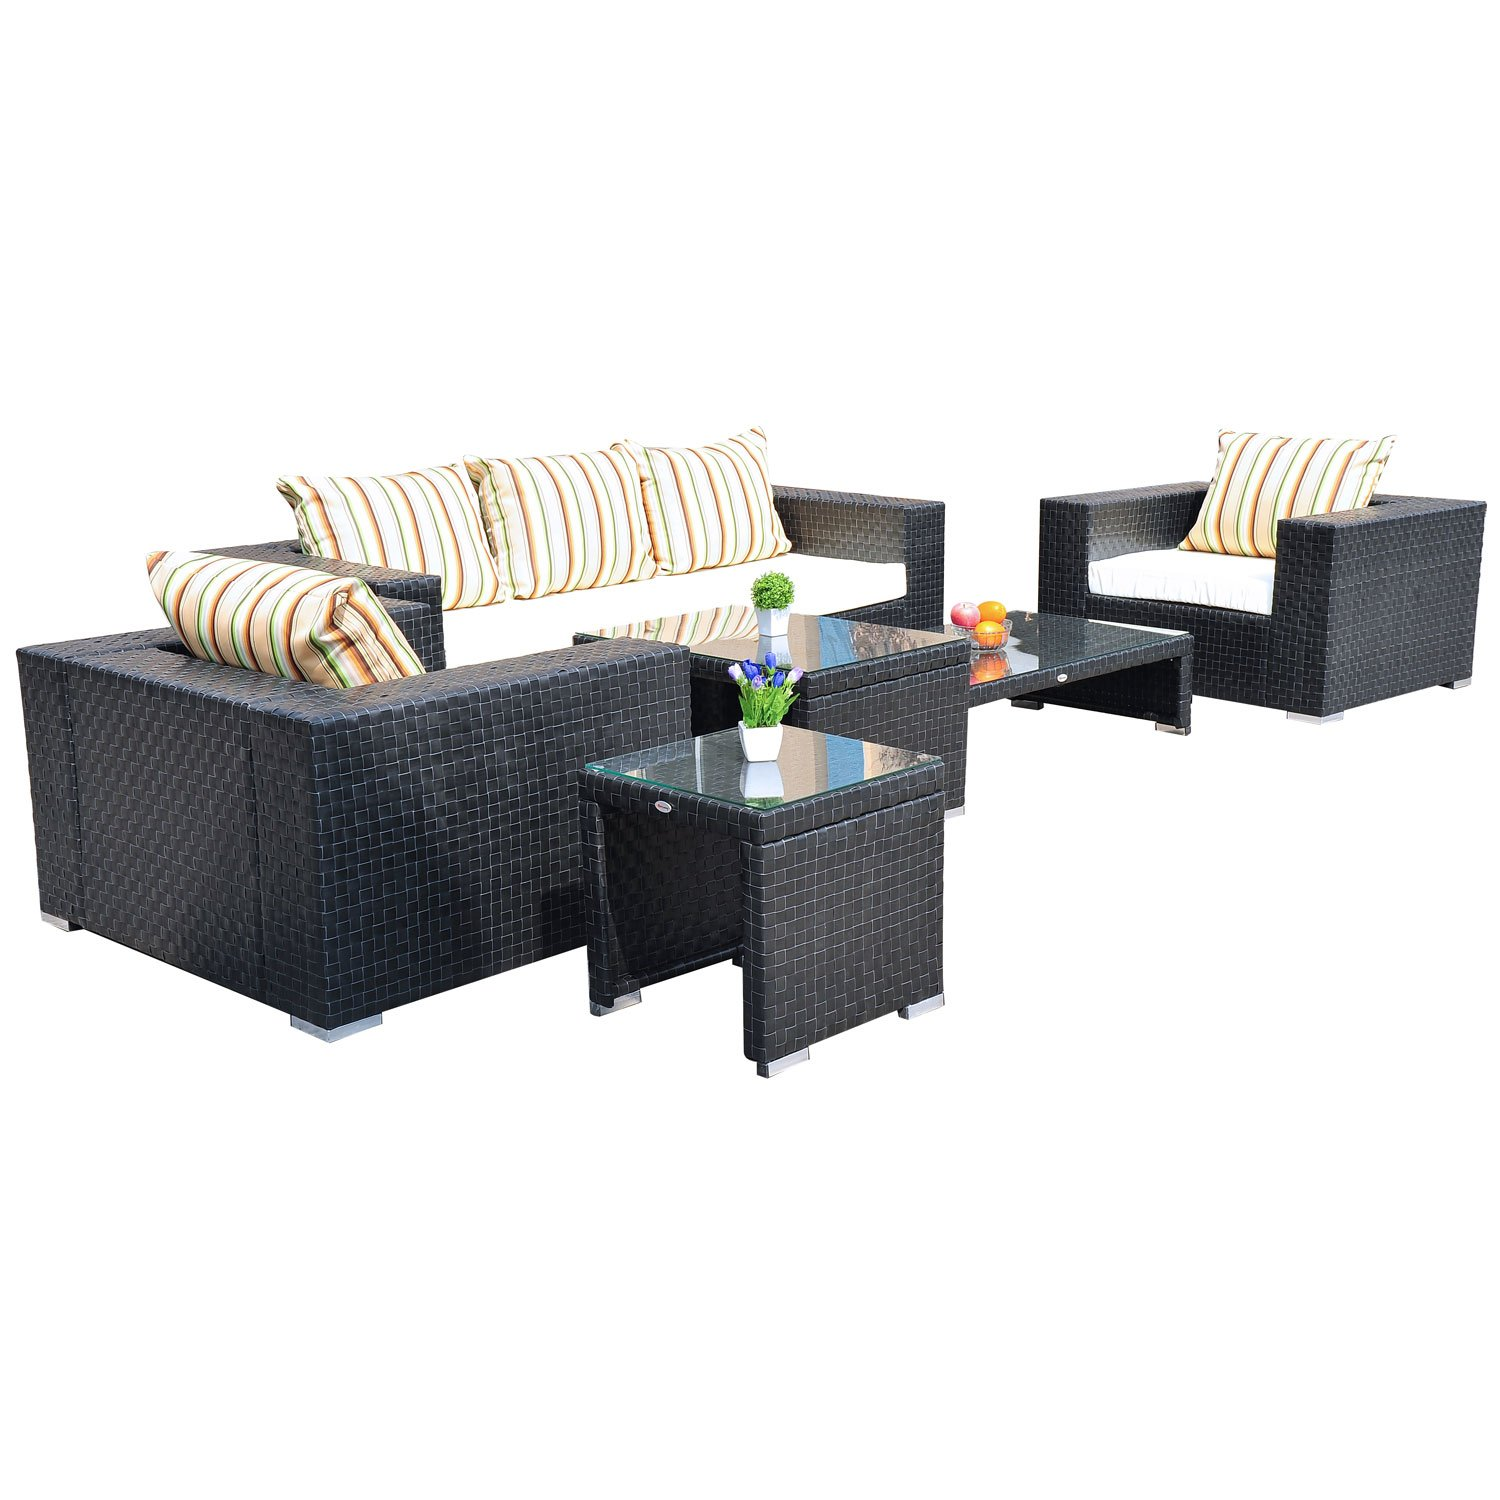 gartenm bel sets g nstig kaufen. Black Bedroom Furniture Sets. Home Design Ideas